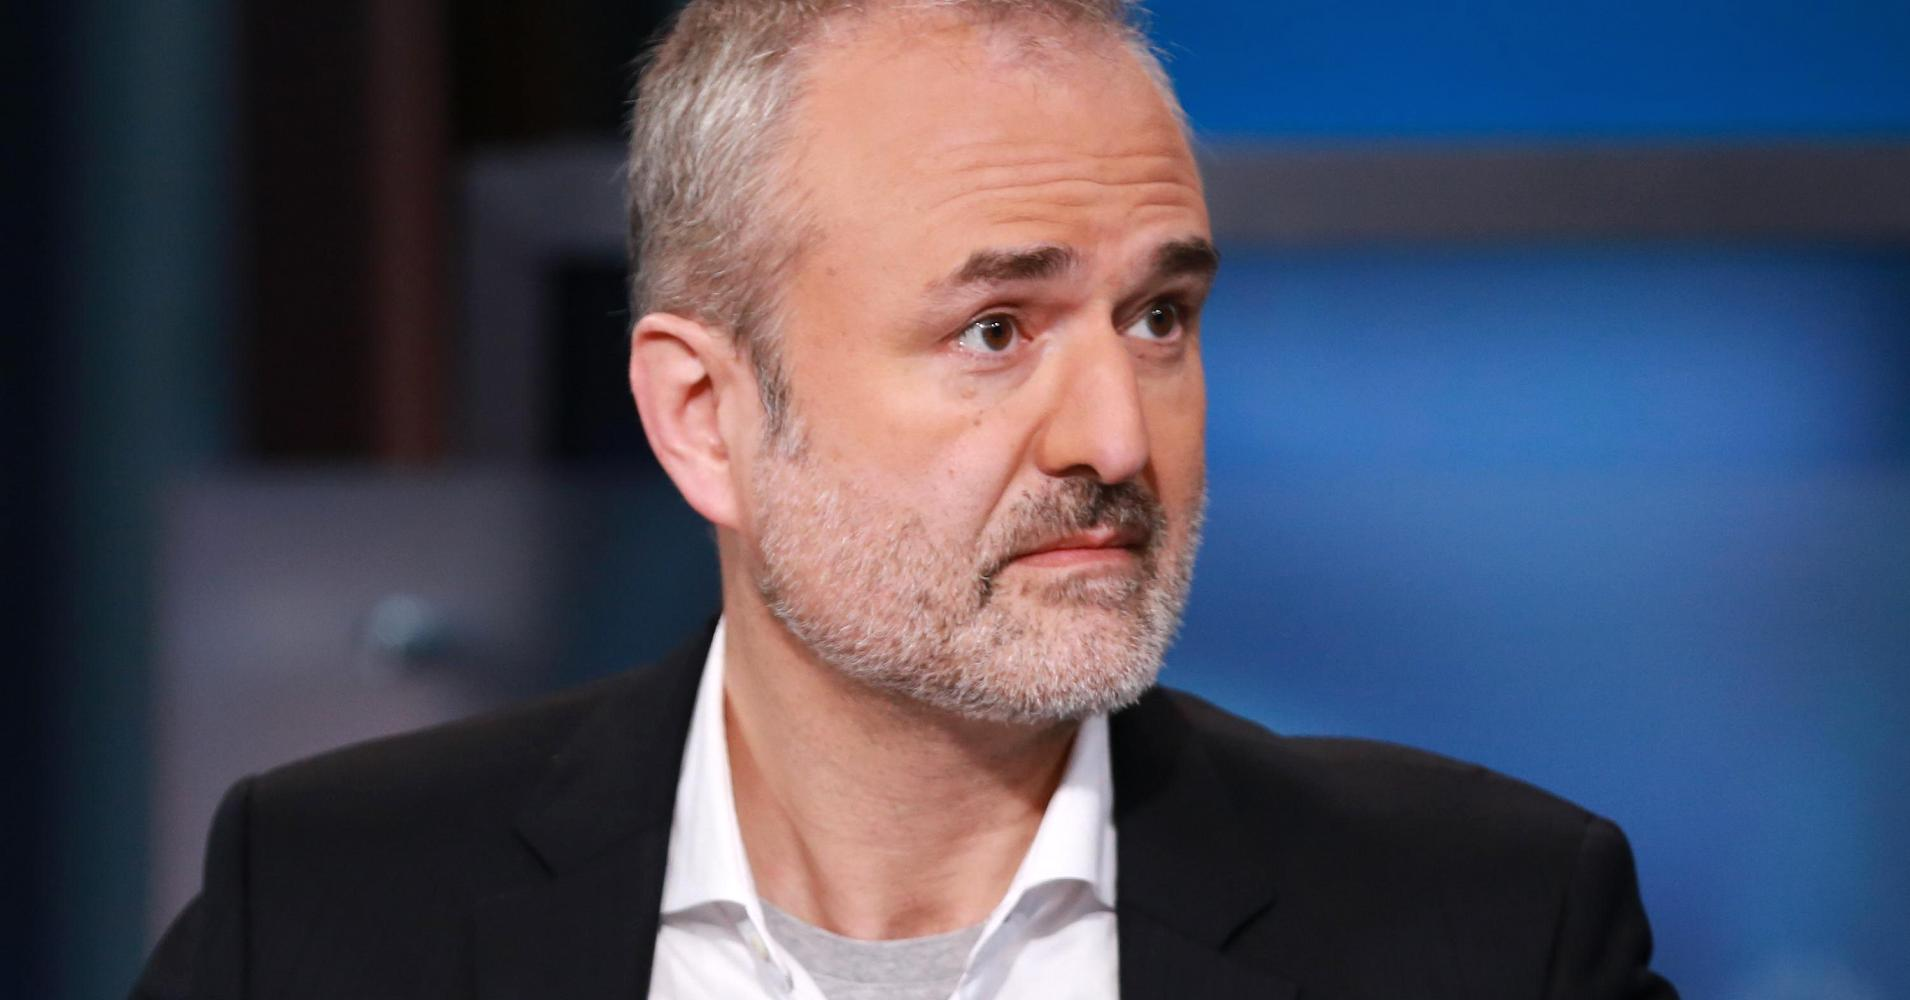 Nick Denton, le patron de Gawker